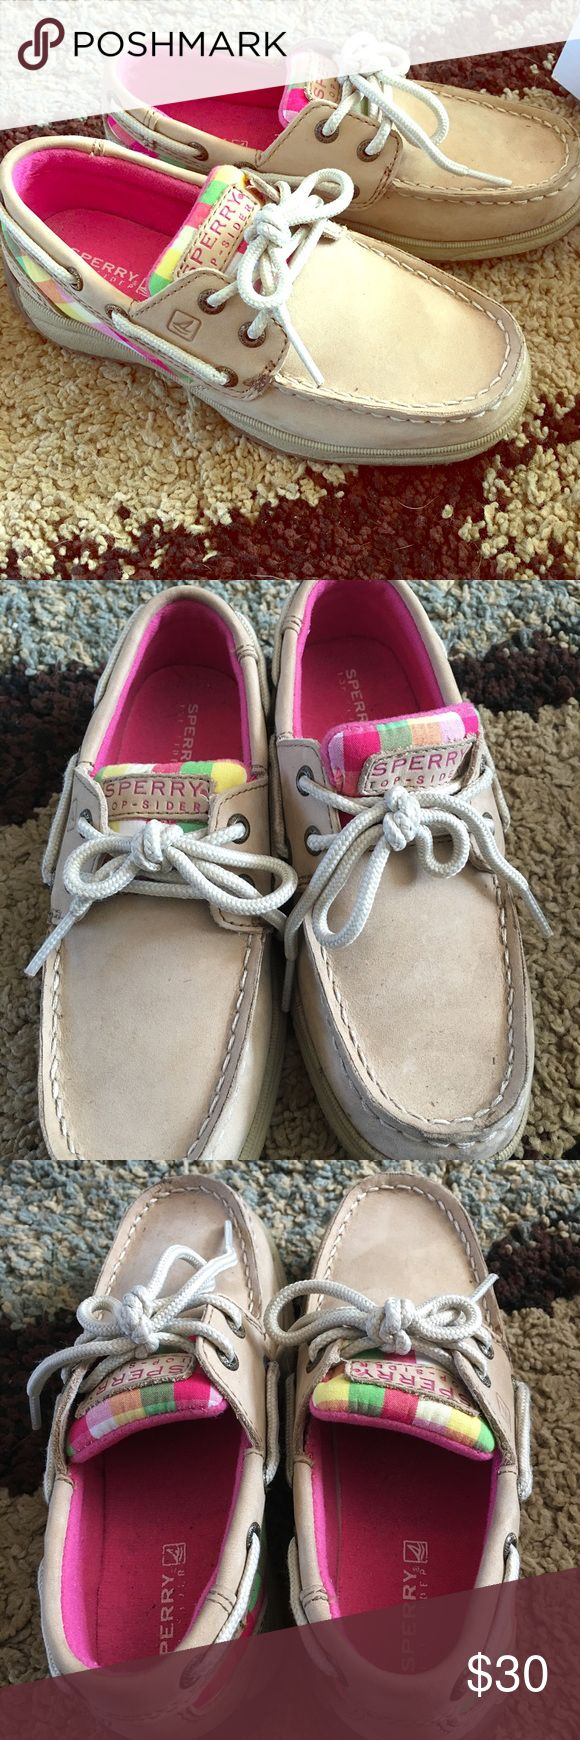 Little girls Sperrys Size 13 Sperry Top-Sider Shoes